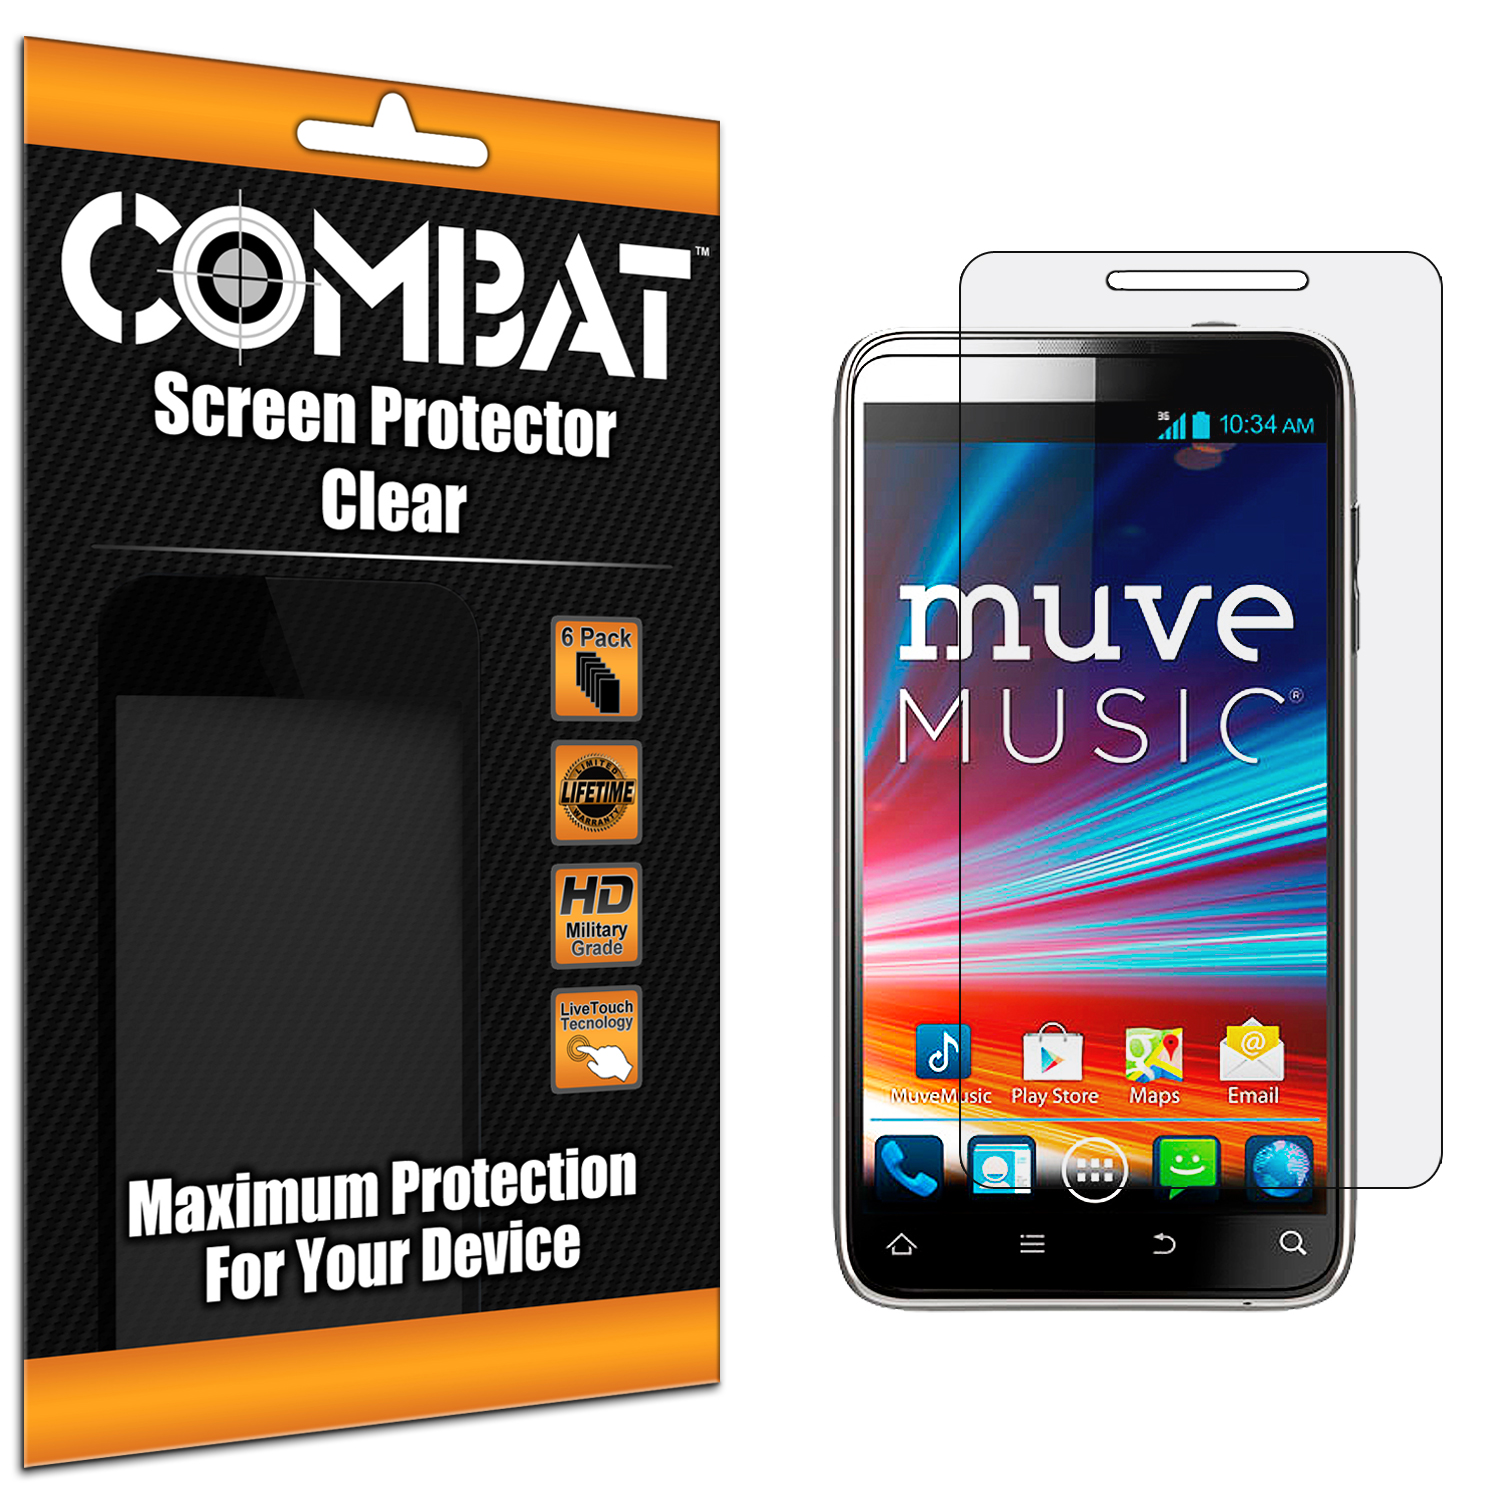 ZTE Engage LT N8000 Combat 6 Pack HD Clear Screen Protector